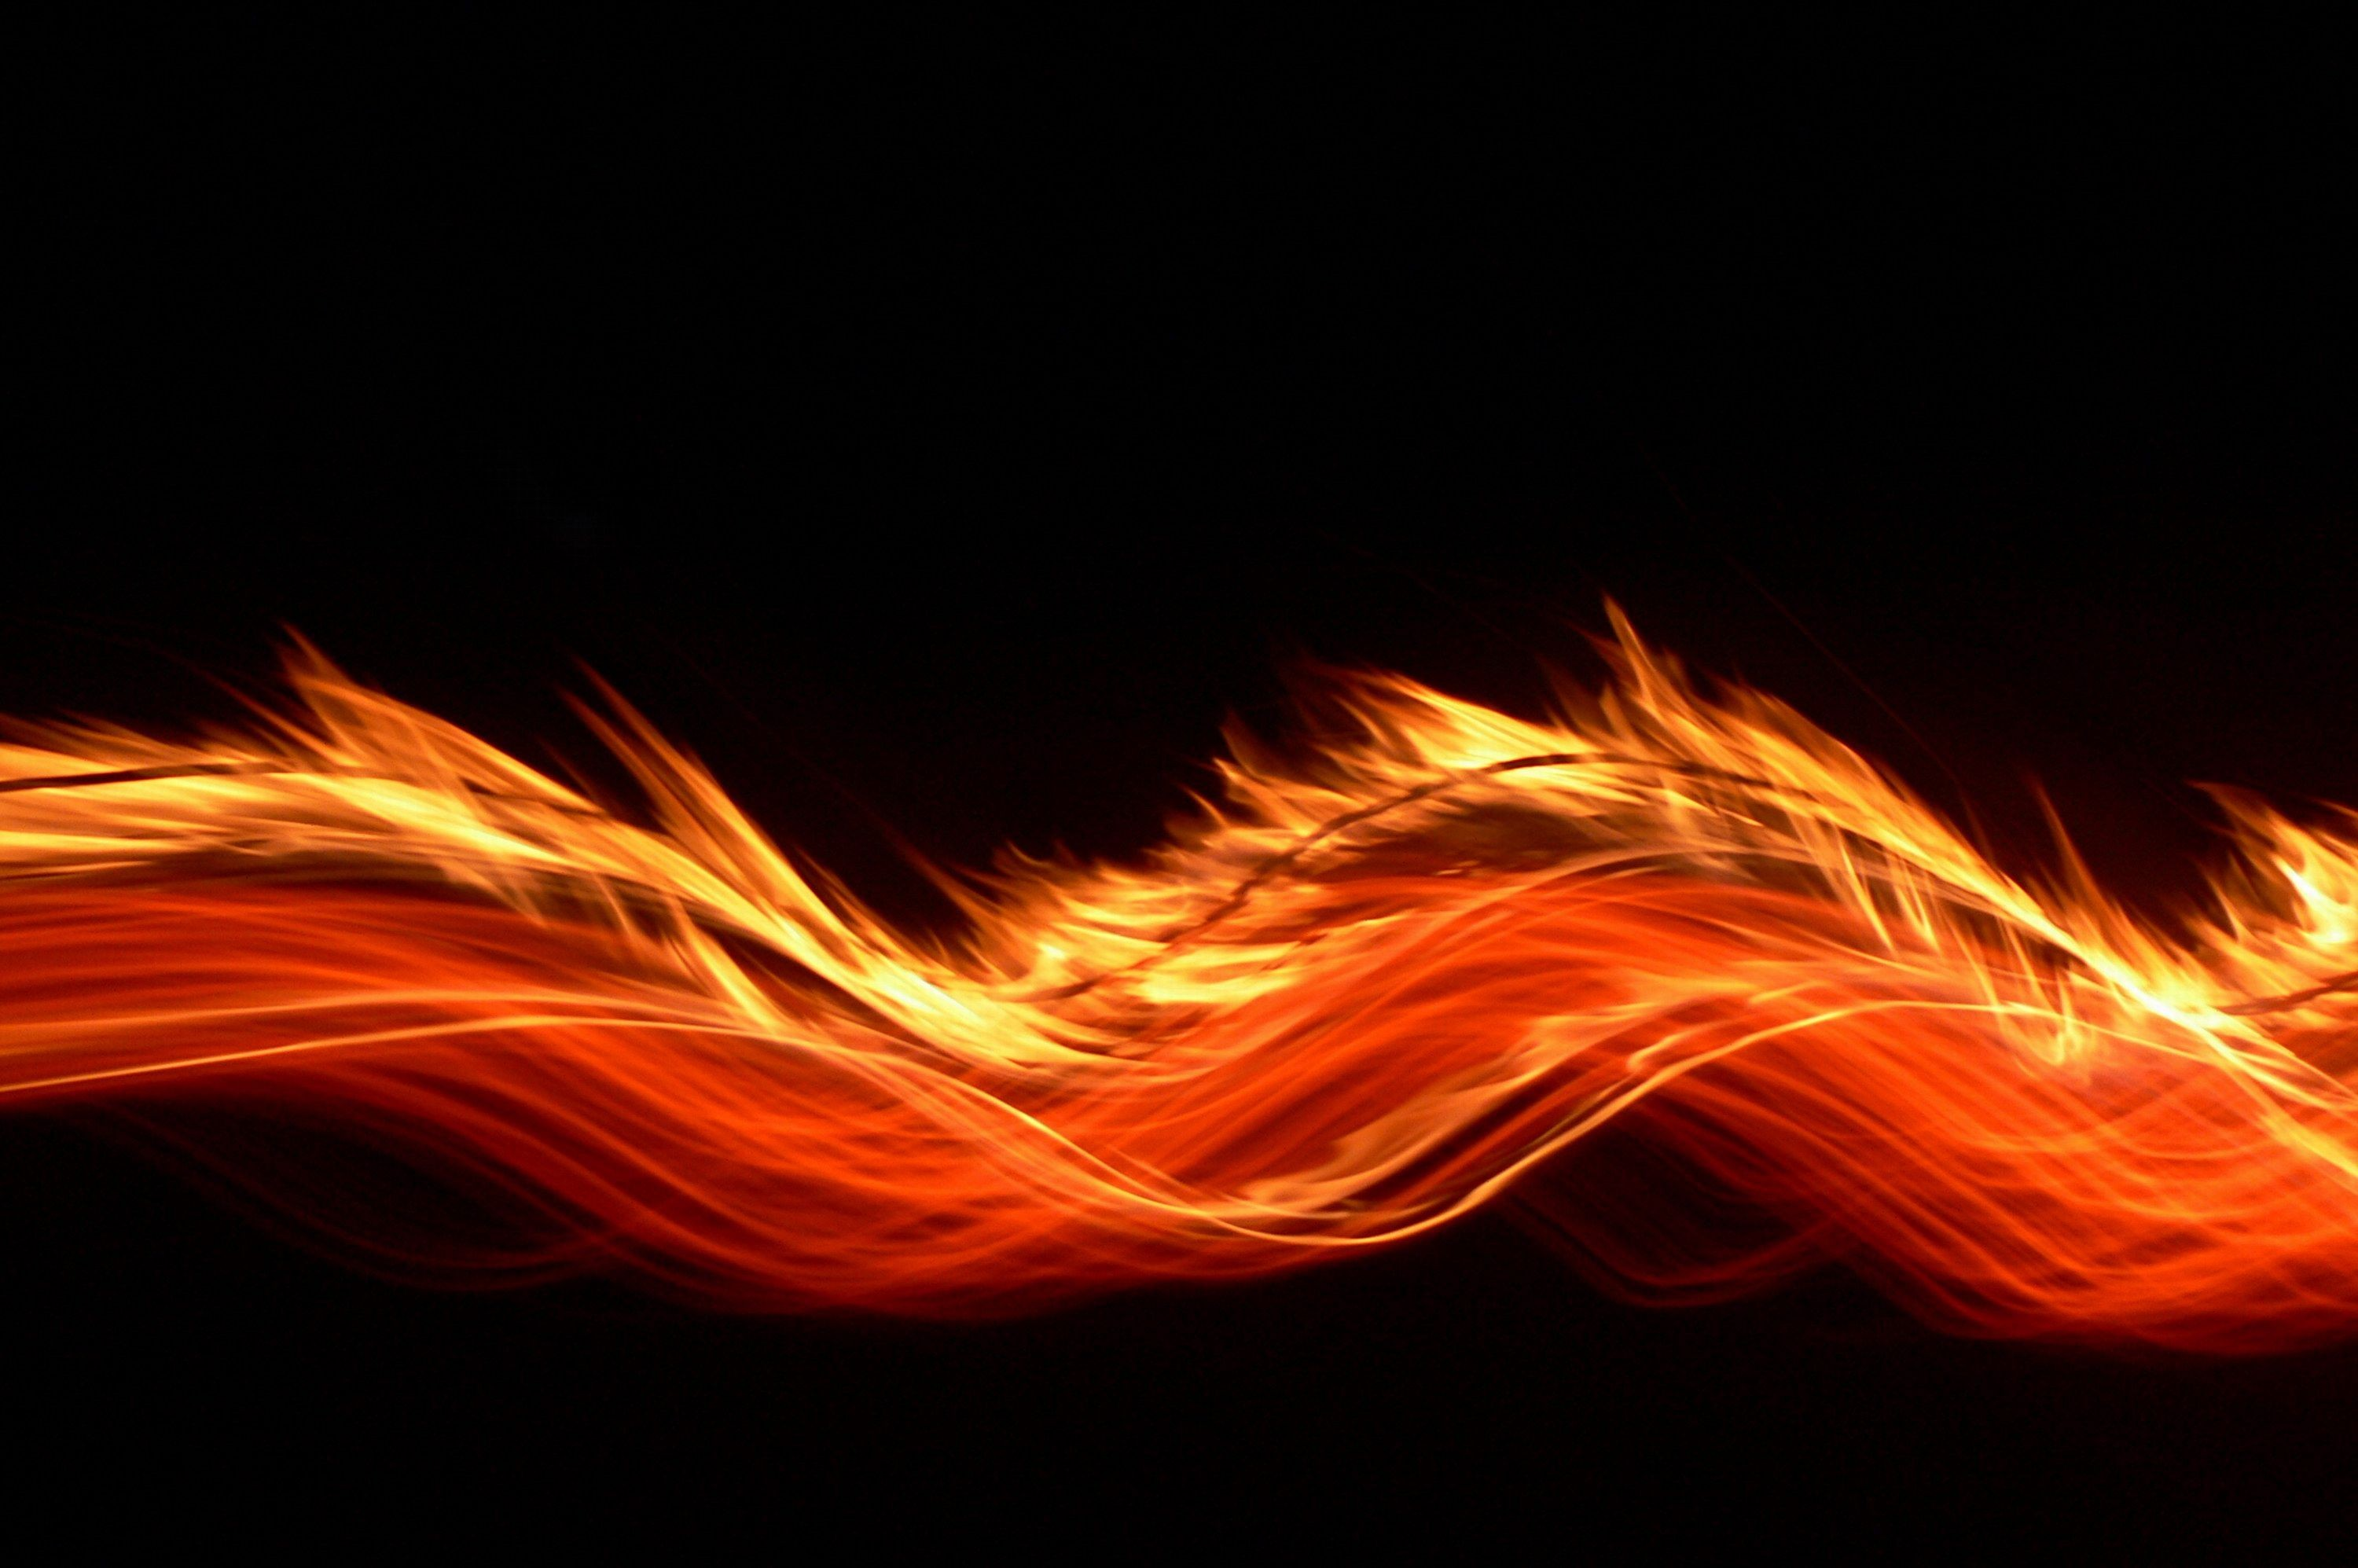 Fire background hd download free stunning hd wallpapers for fire light shadow line thecheapjerseys Images